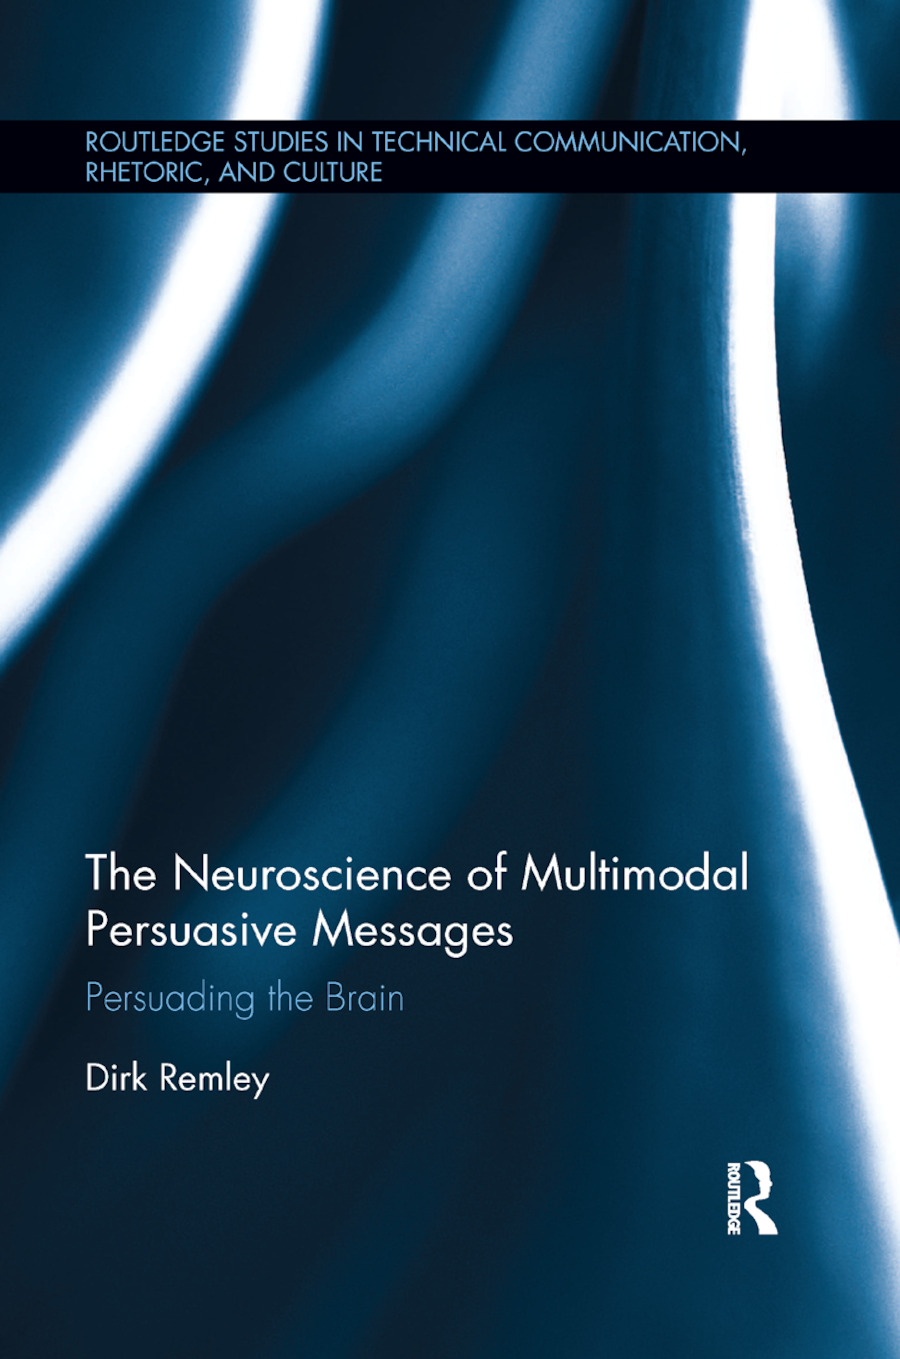 The Neuroscience of Multimodal Persuasive Messages: Persuading the Brain book cover